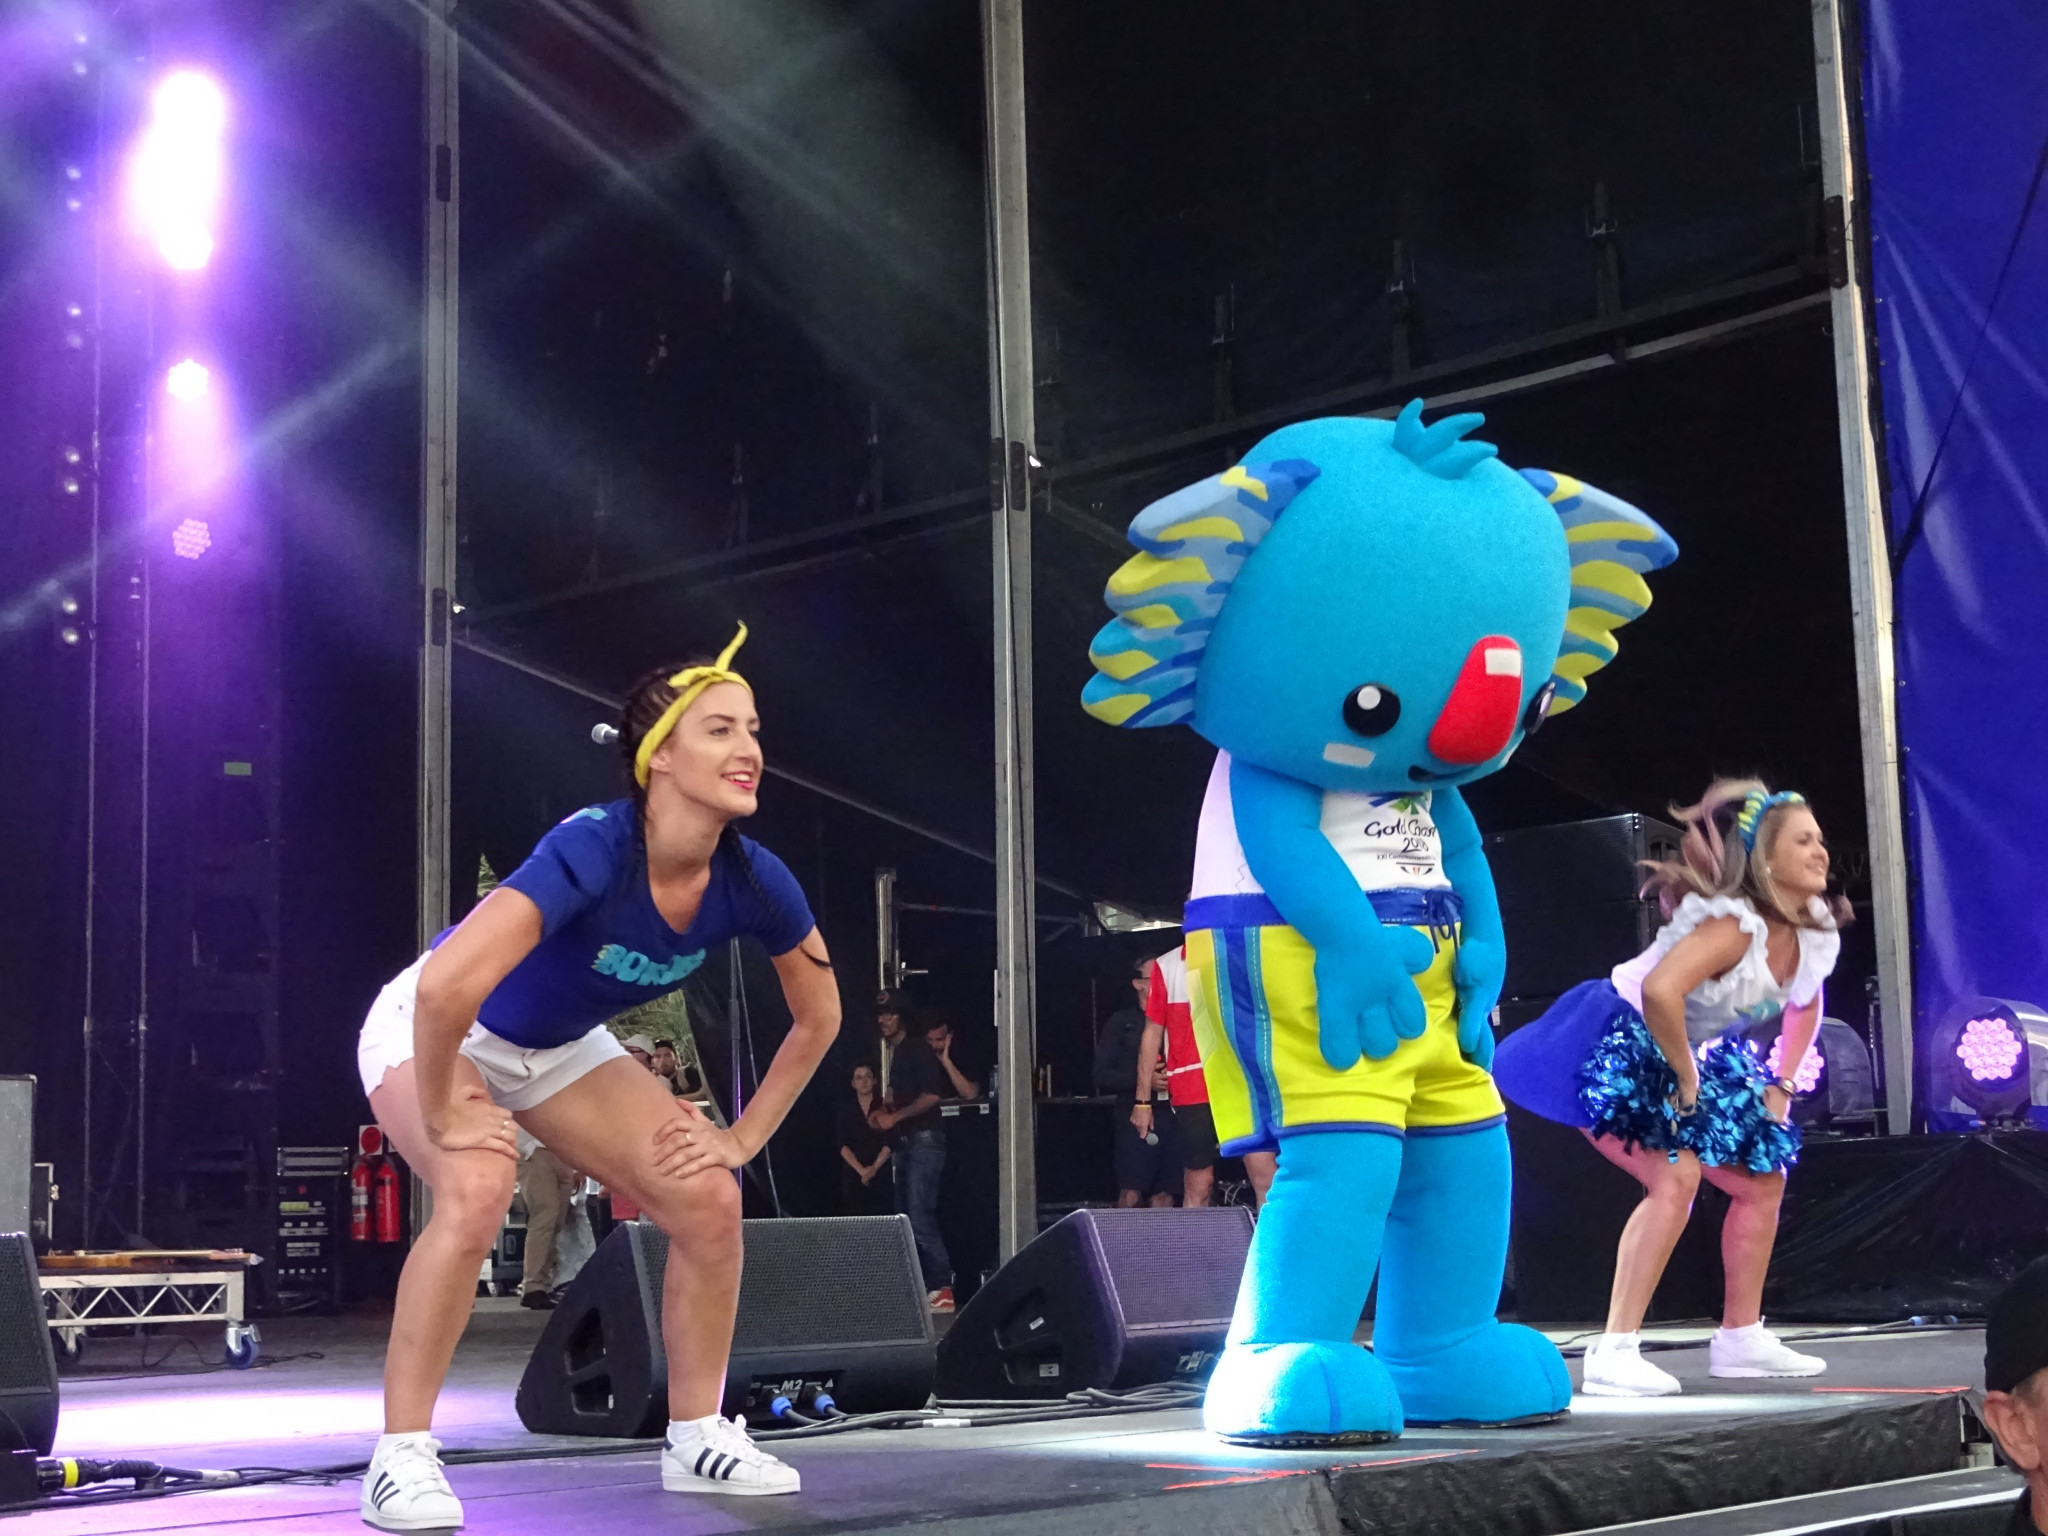 Gold Coast 2018 mascot Borobi dances at the Baton Relay ©ITG